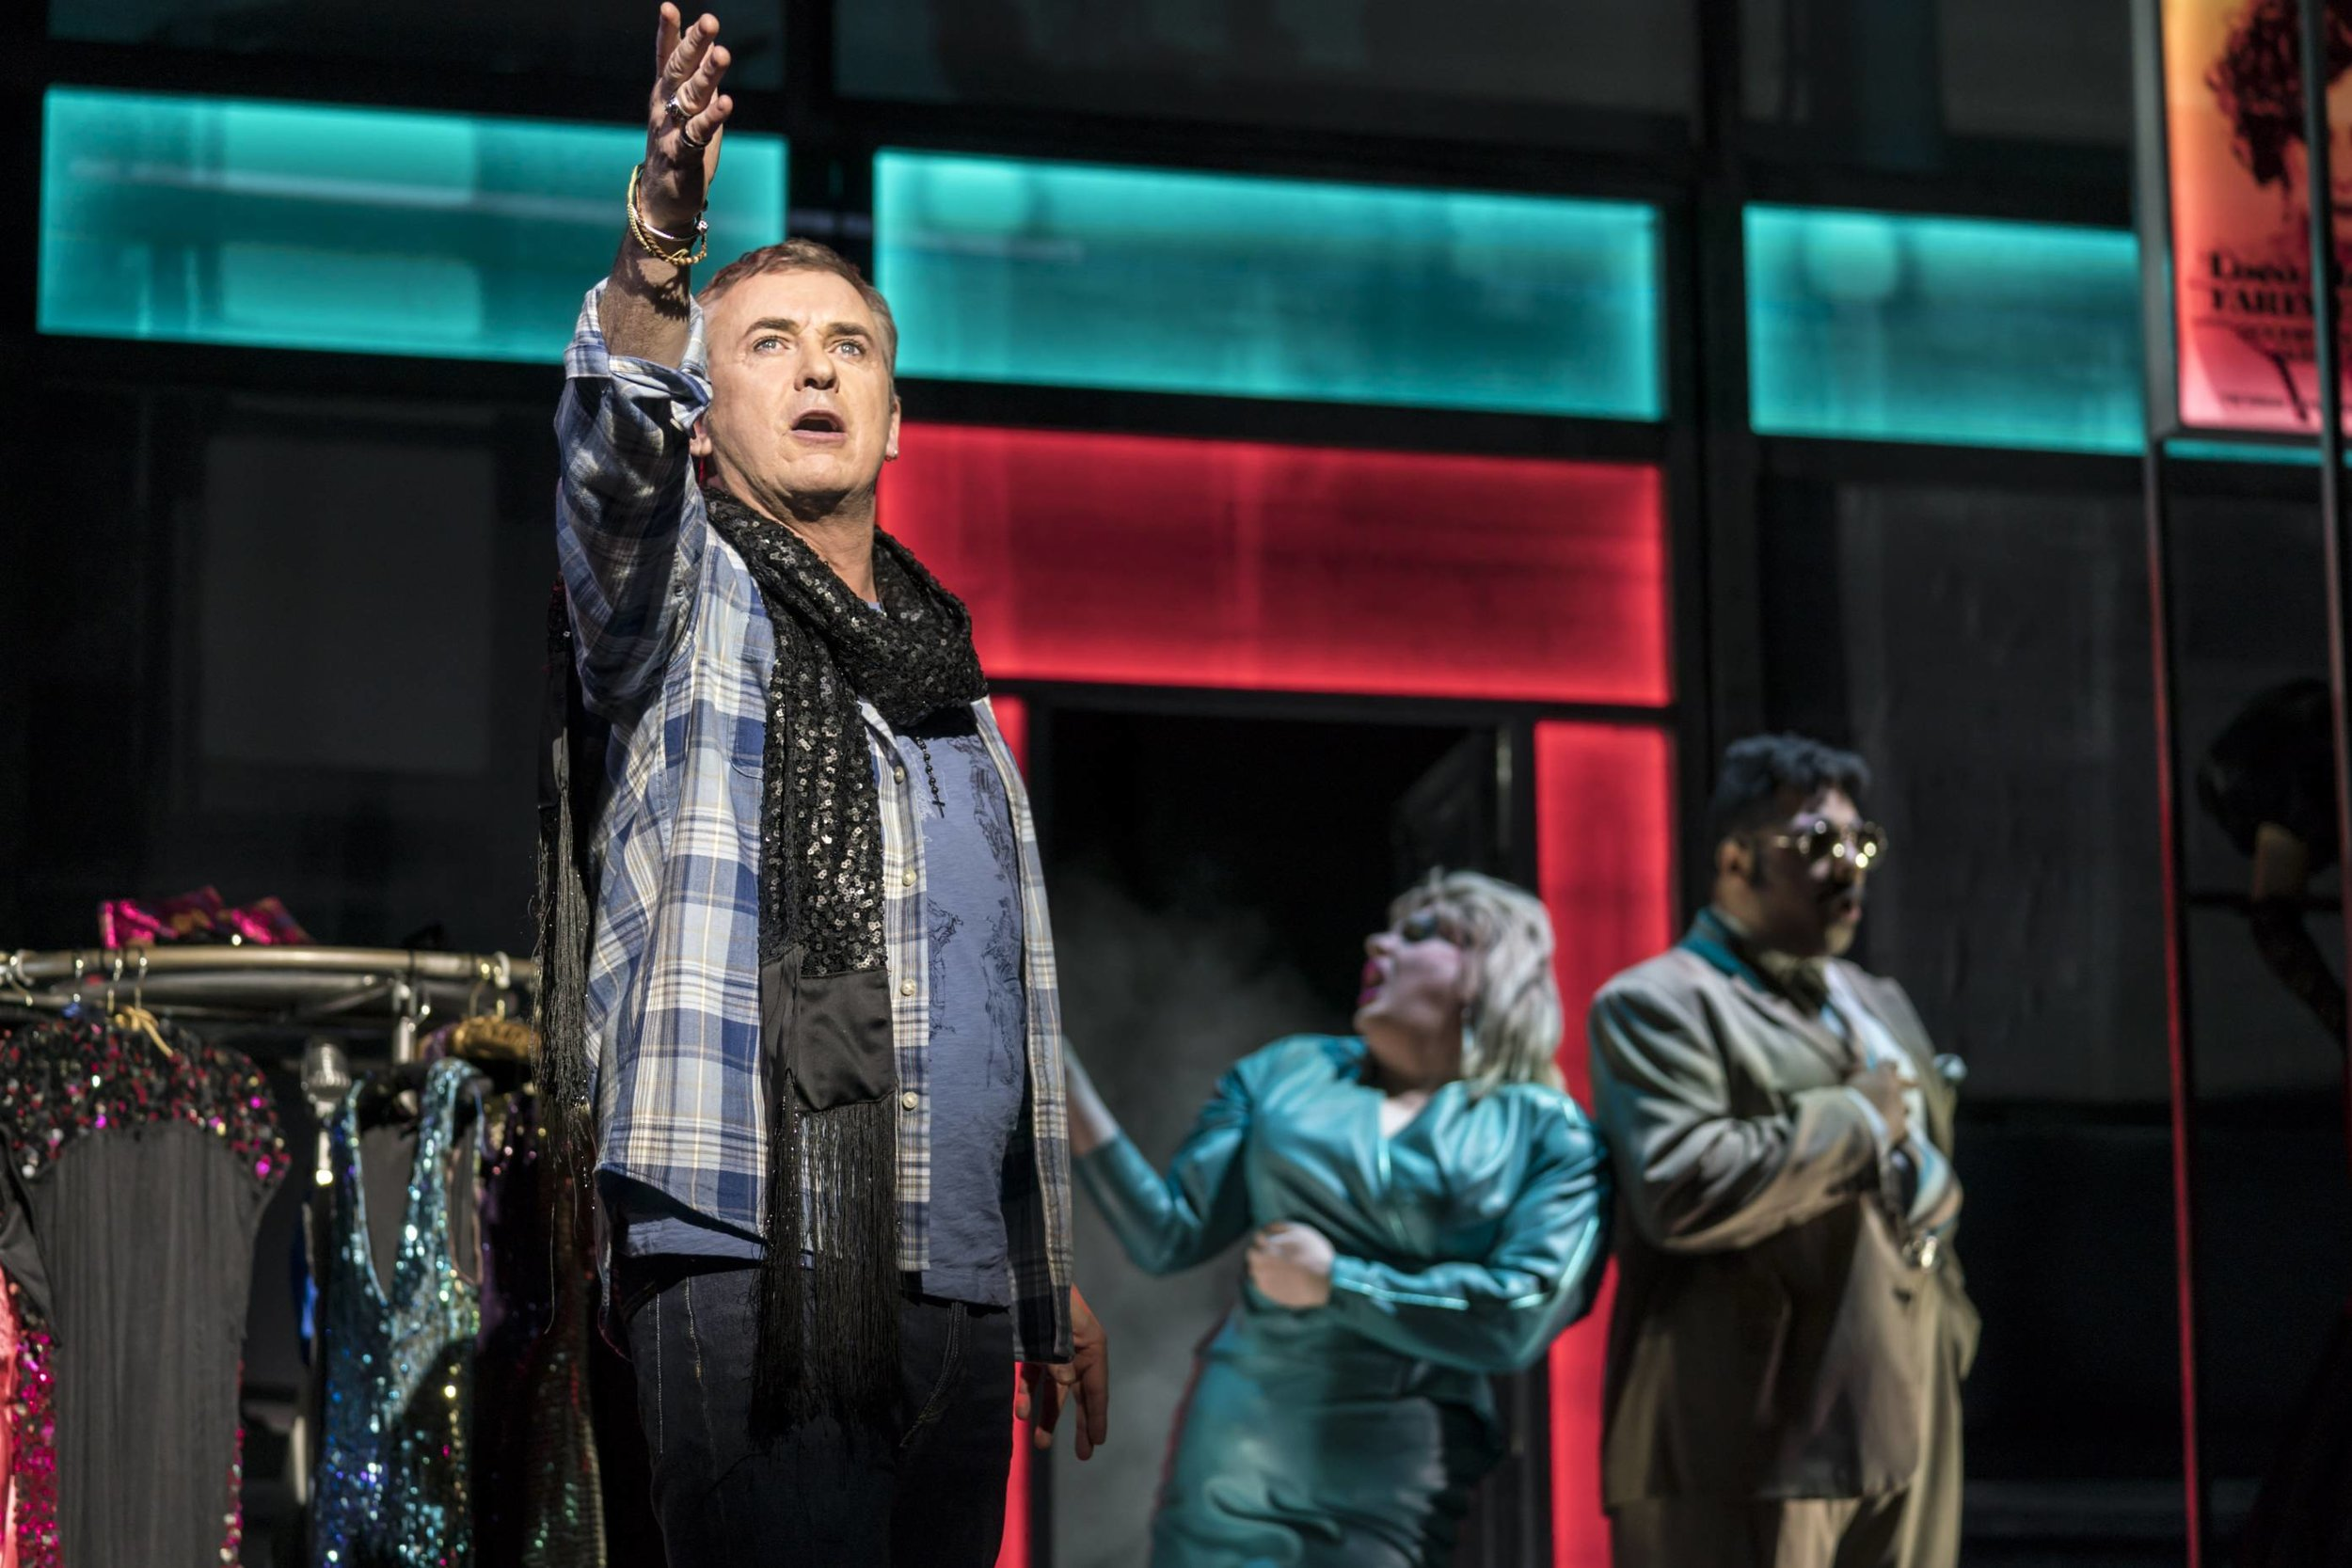 Shane Richie as Hugo in Everybody's Talking About Jamie which also stars Layton Williams (top picture). The musical embarks on its first UK tour in 2020 and will play Wales Millennium Centre in May.